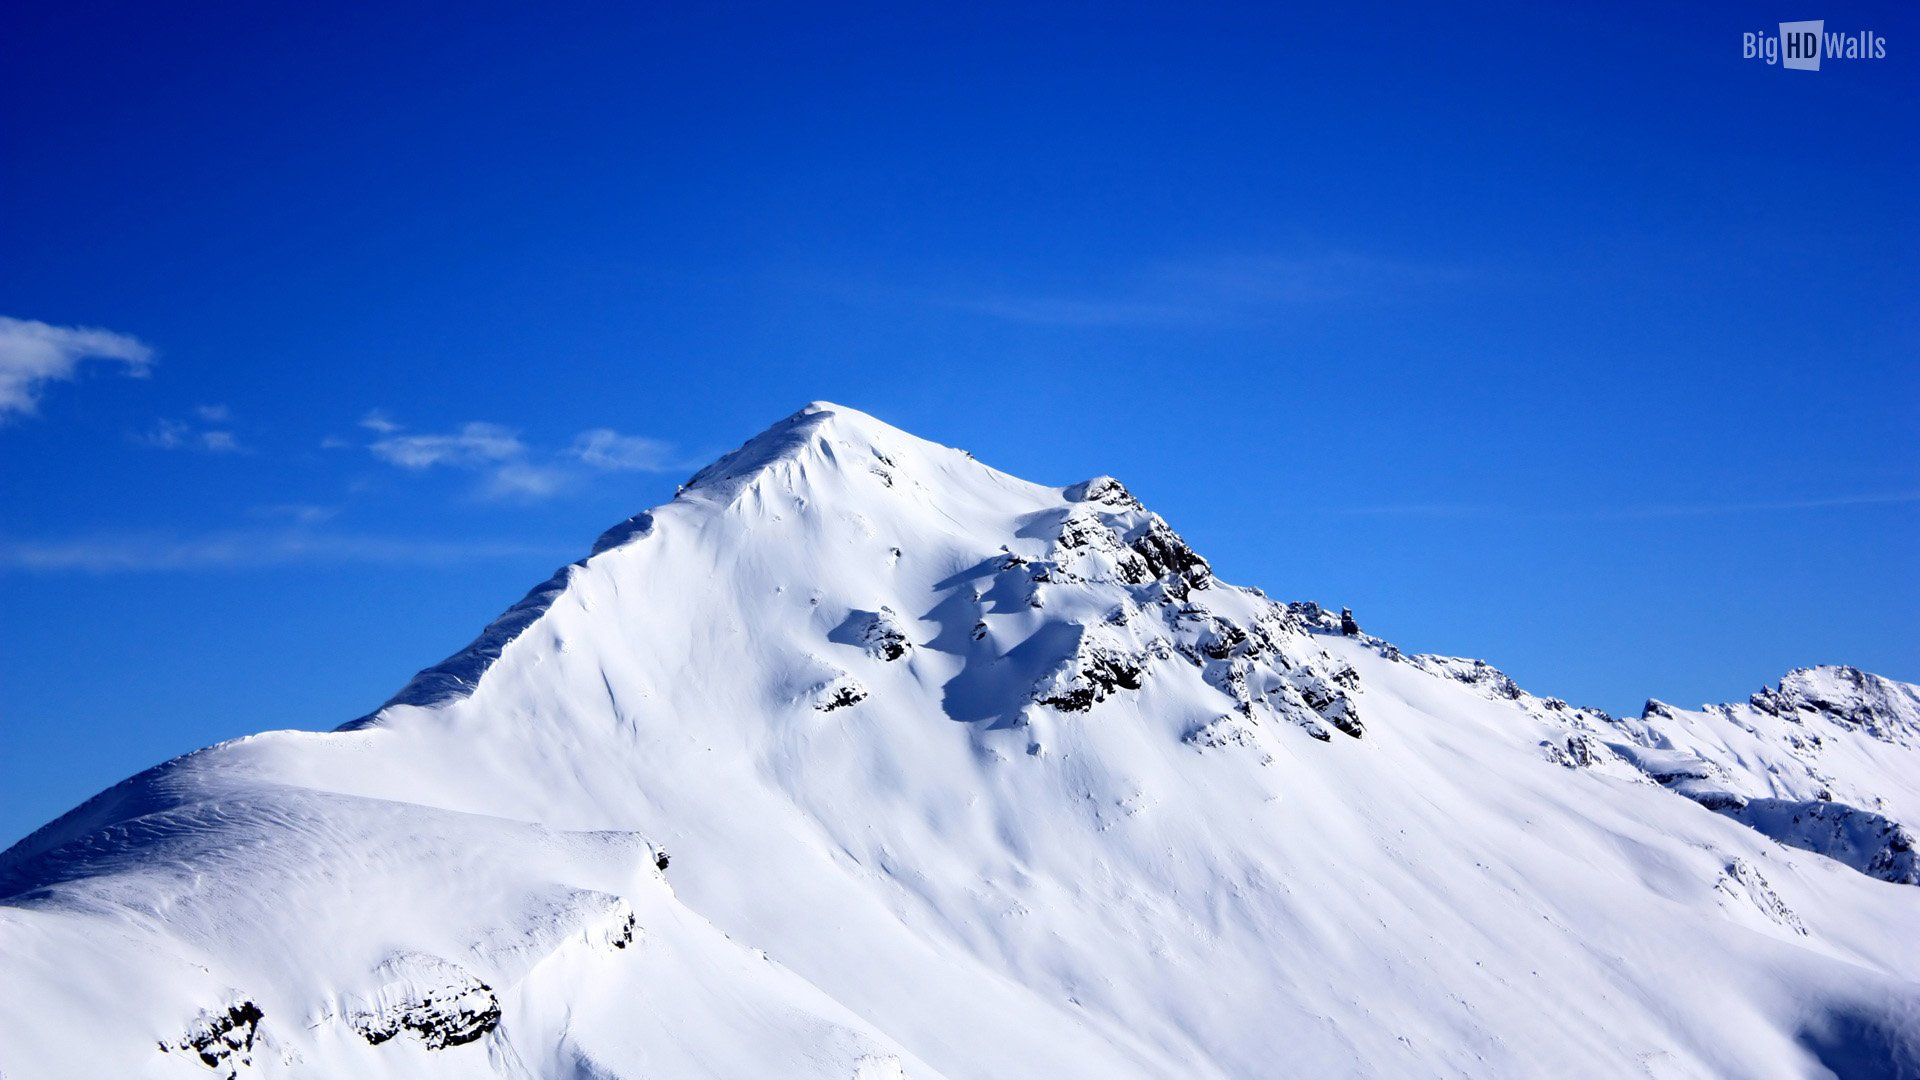 Snow covered peak and beautiful blue sky Click on image to enlarge 1920x1080